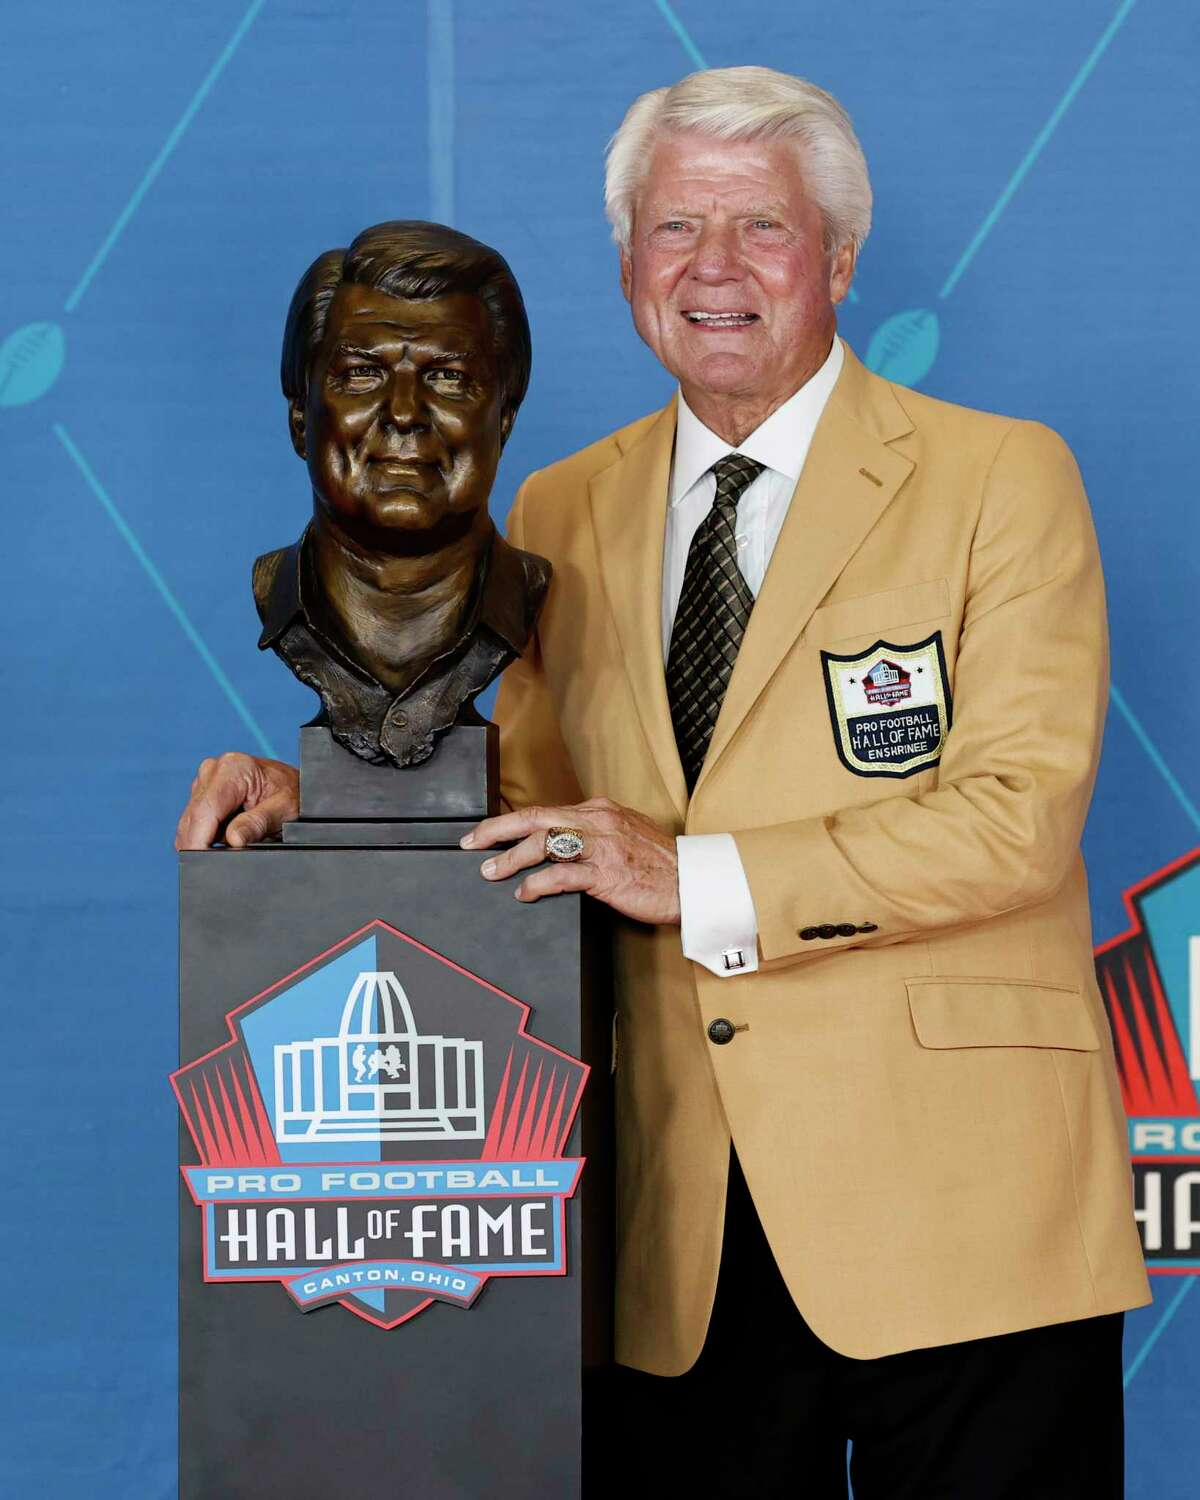 Jimmy Johnson, a member of the Pro Football Hall of Fame Centennial Class, poses with a bust of himself during the induction ceremony at the Pro Football Hall of Fame, Saturday, Aug. 7, 2021, in Canton, Ohio. (AP Photo/Ron Schwane, Pool)